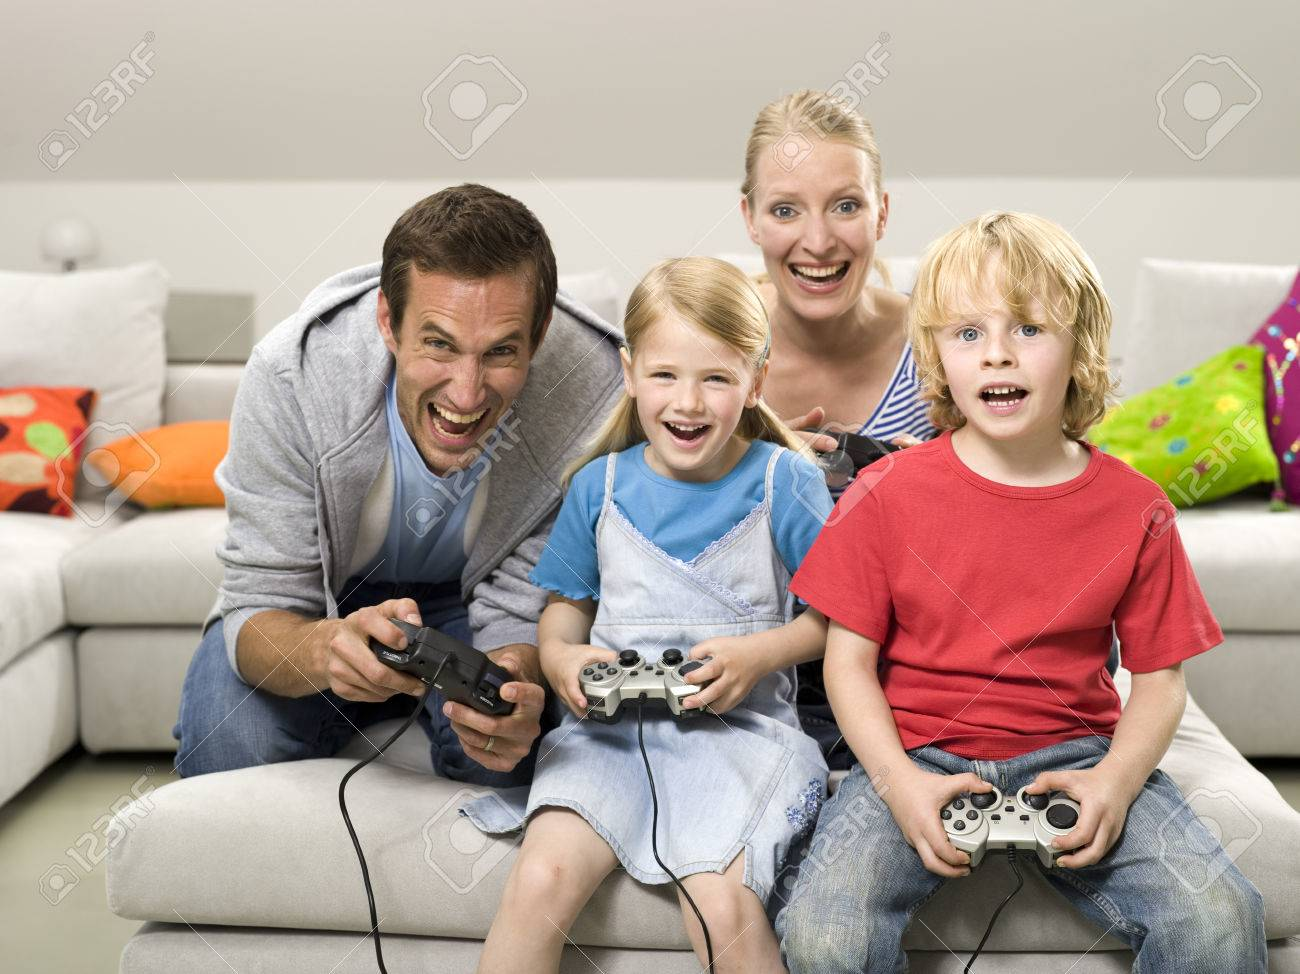 Family playing compouter game Stock Photo - 24303137